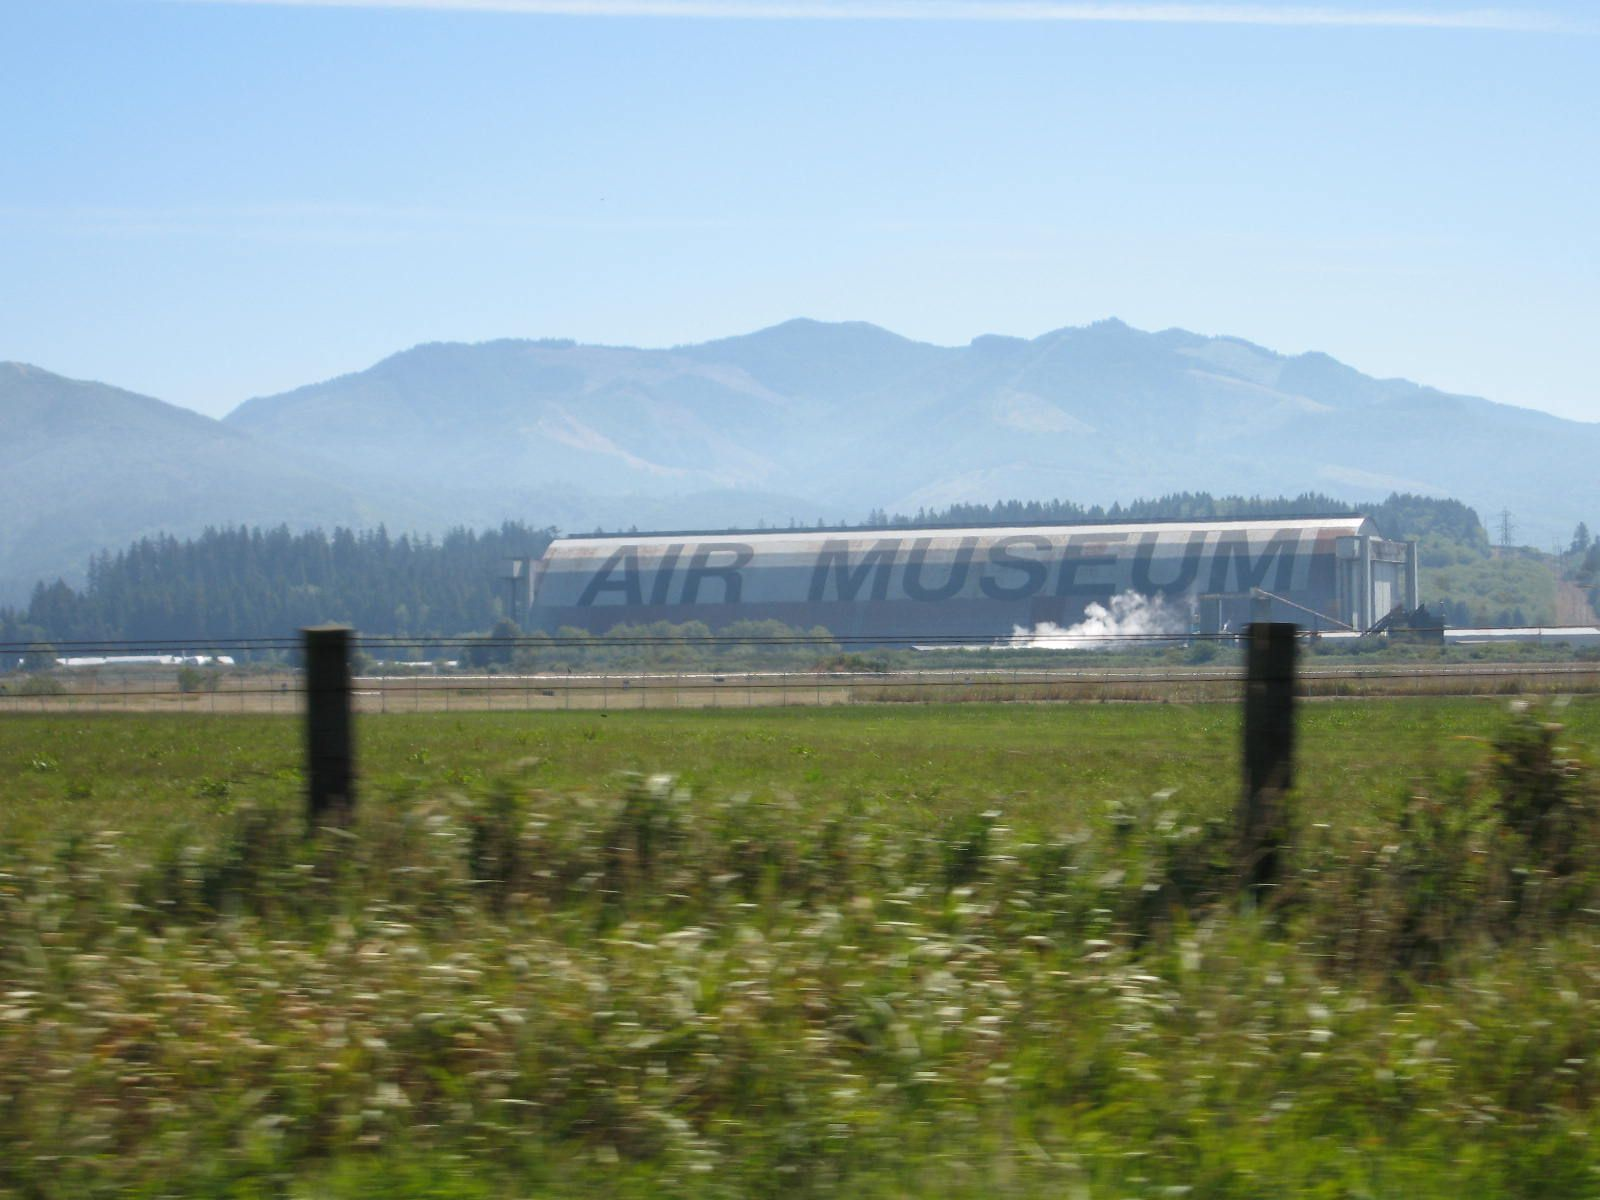 Blimp hangar from WWII at Tillamook, Oregon. Now houses an